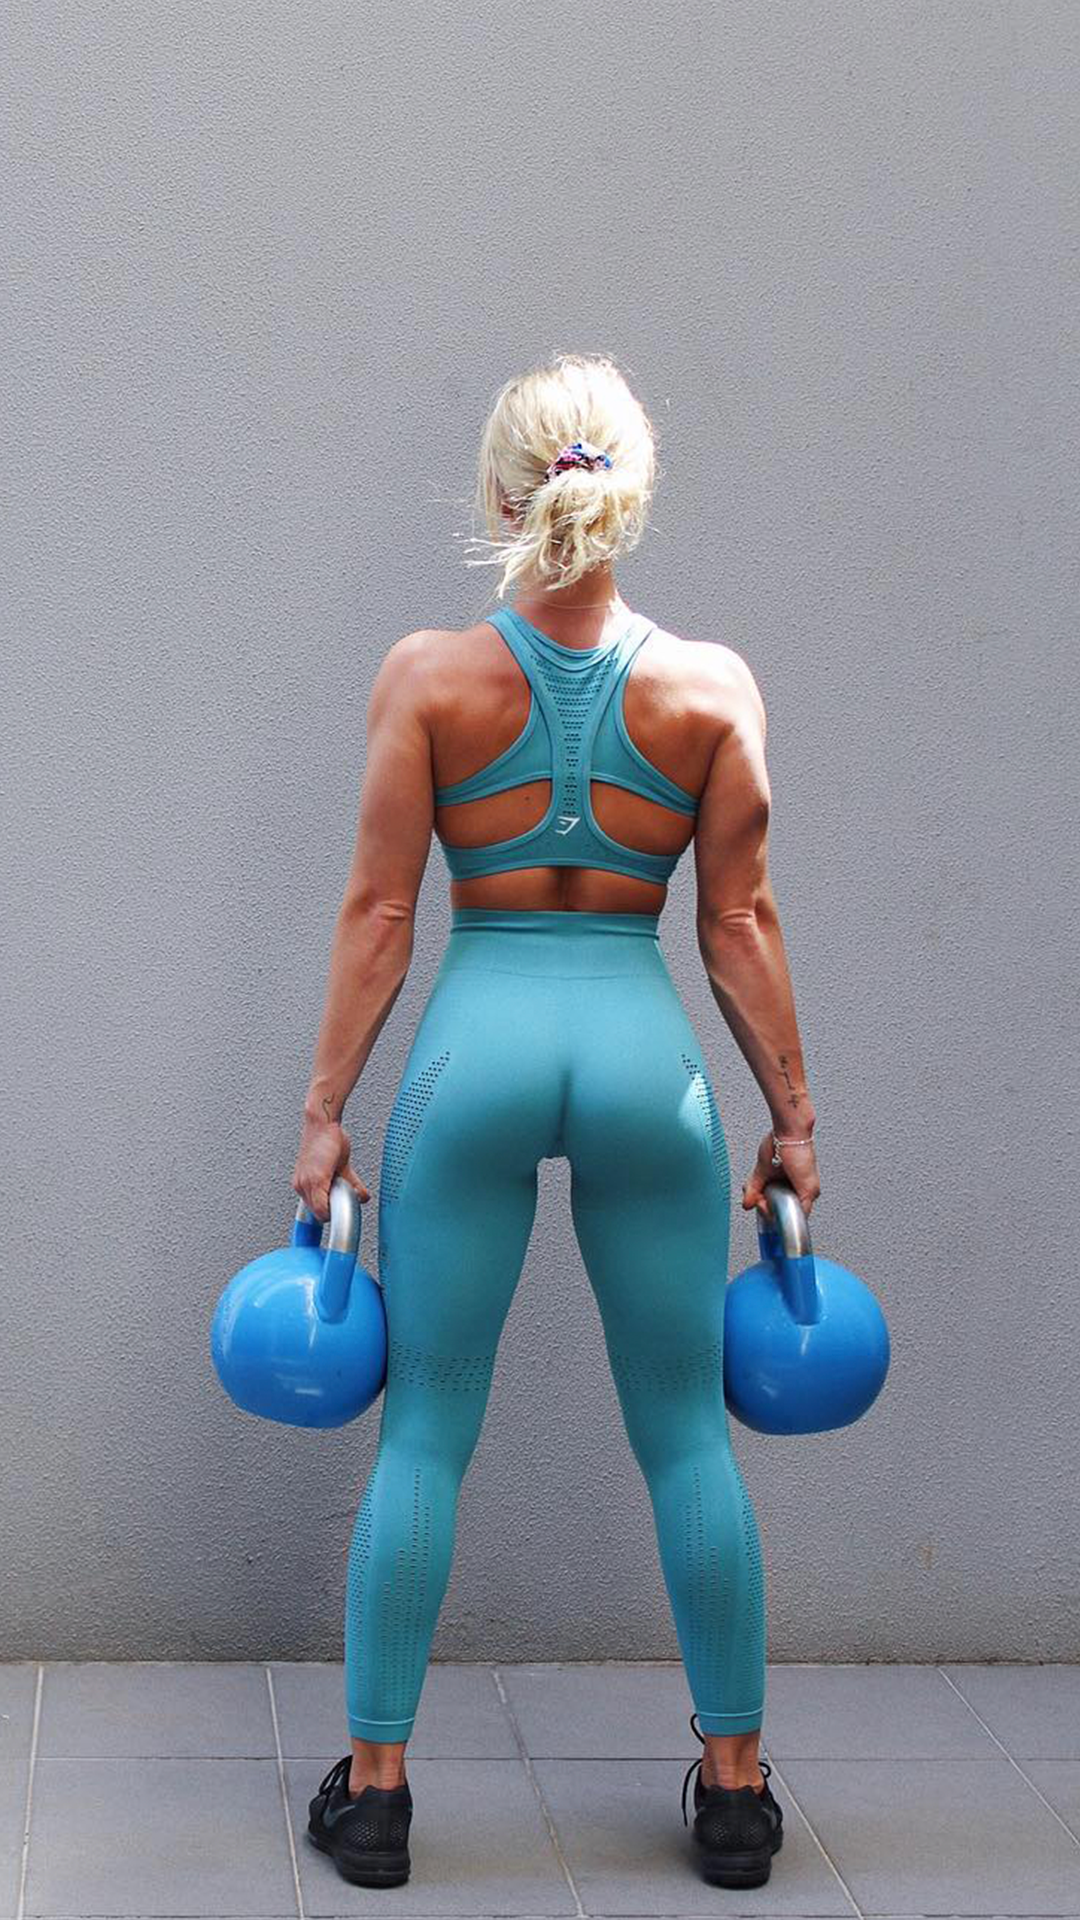 448abdbf6f3ca6 Morgan Moroney matches it up with the Sea Blue Flawless Knit collection to  match her kettlebells! #Gymshark #Gym #Sweat #Train #Perform #Seamless  #Exercise ...